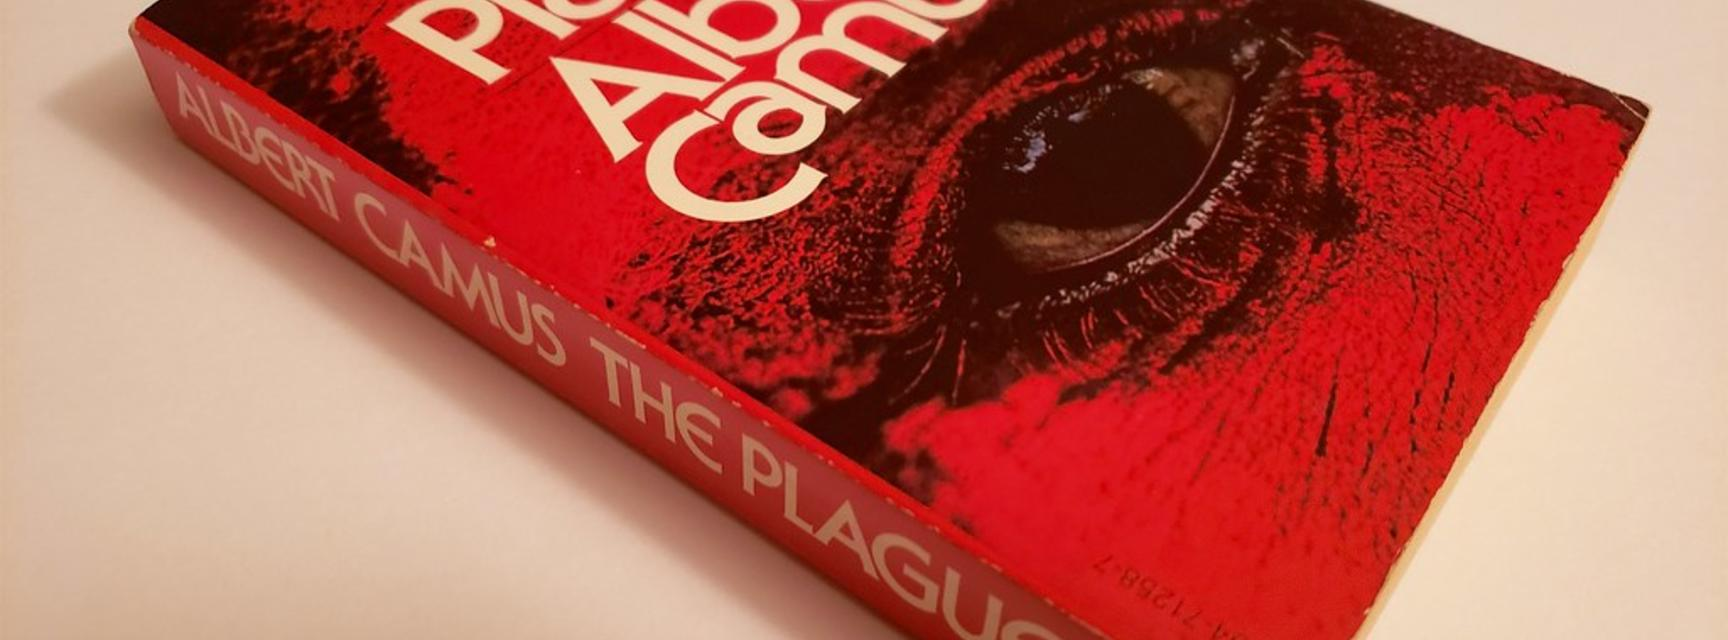 Image of Albert Camus's book entitled The Plague. The cover is red with a large eye.